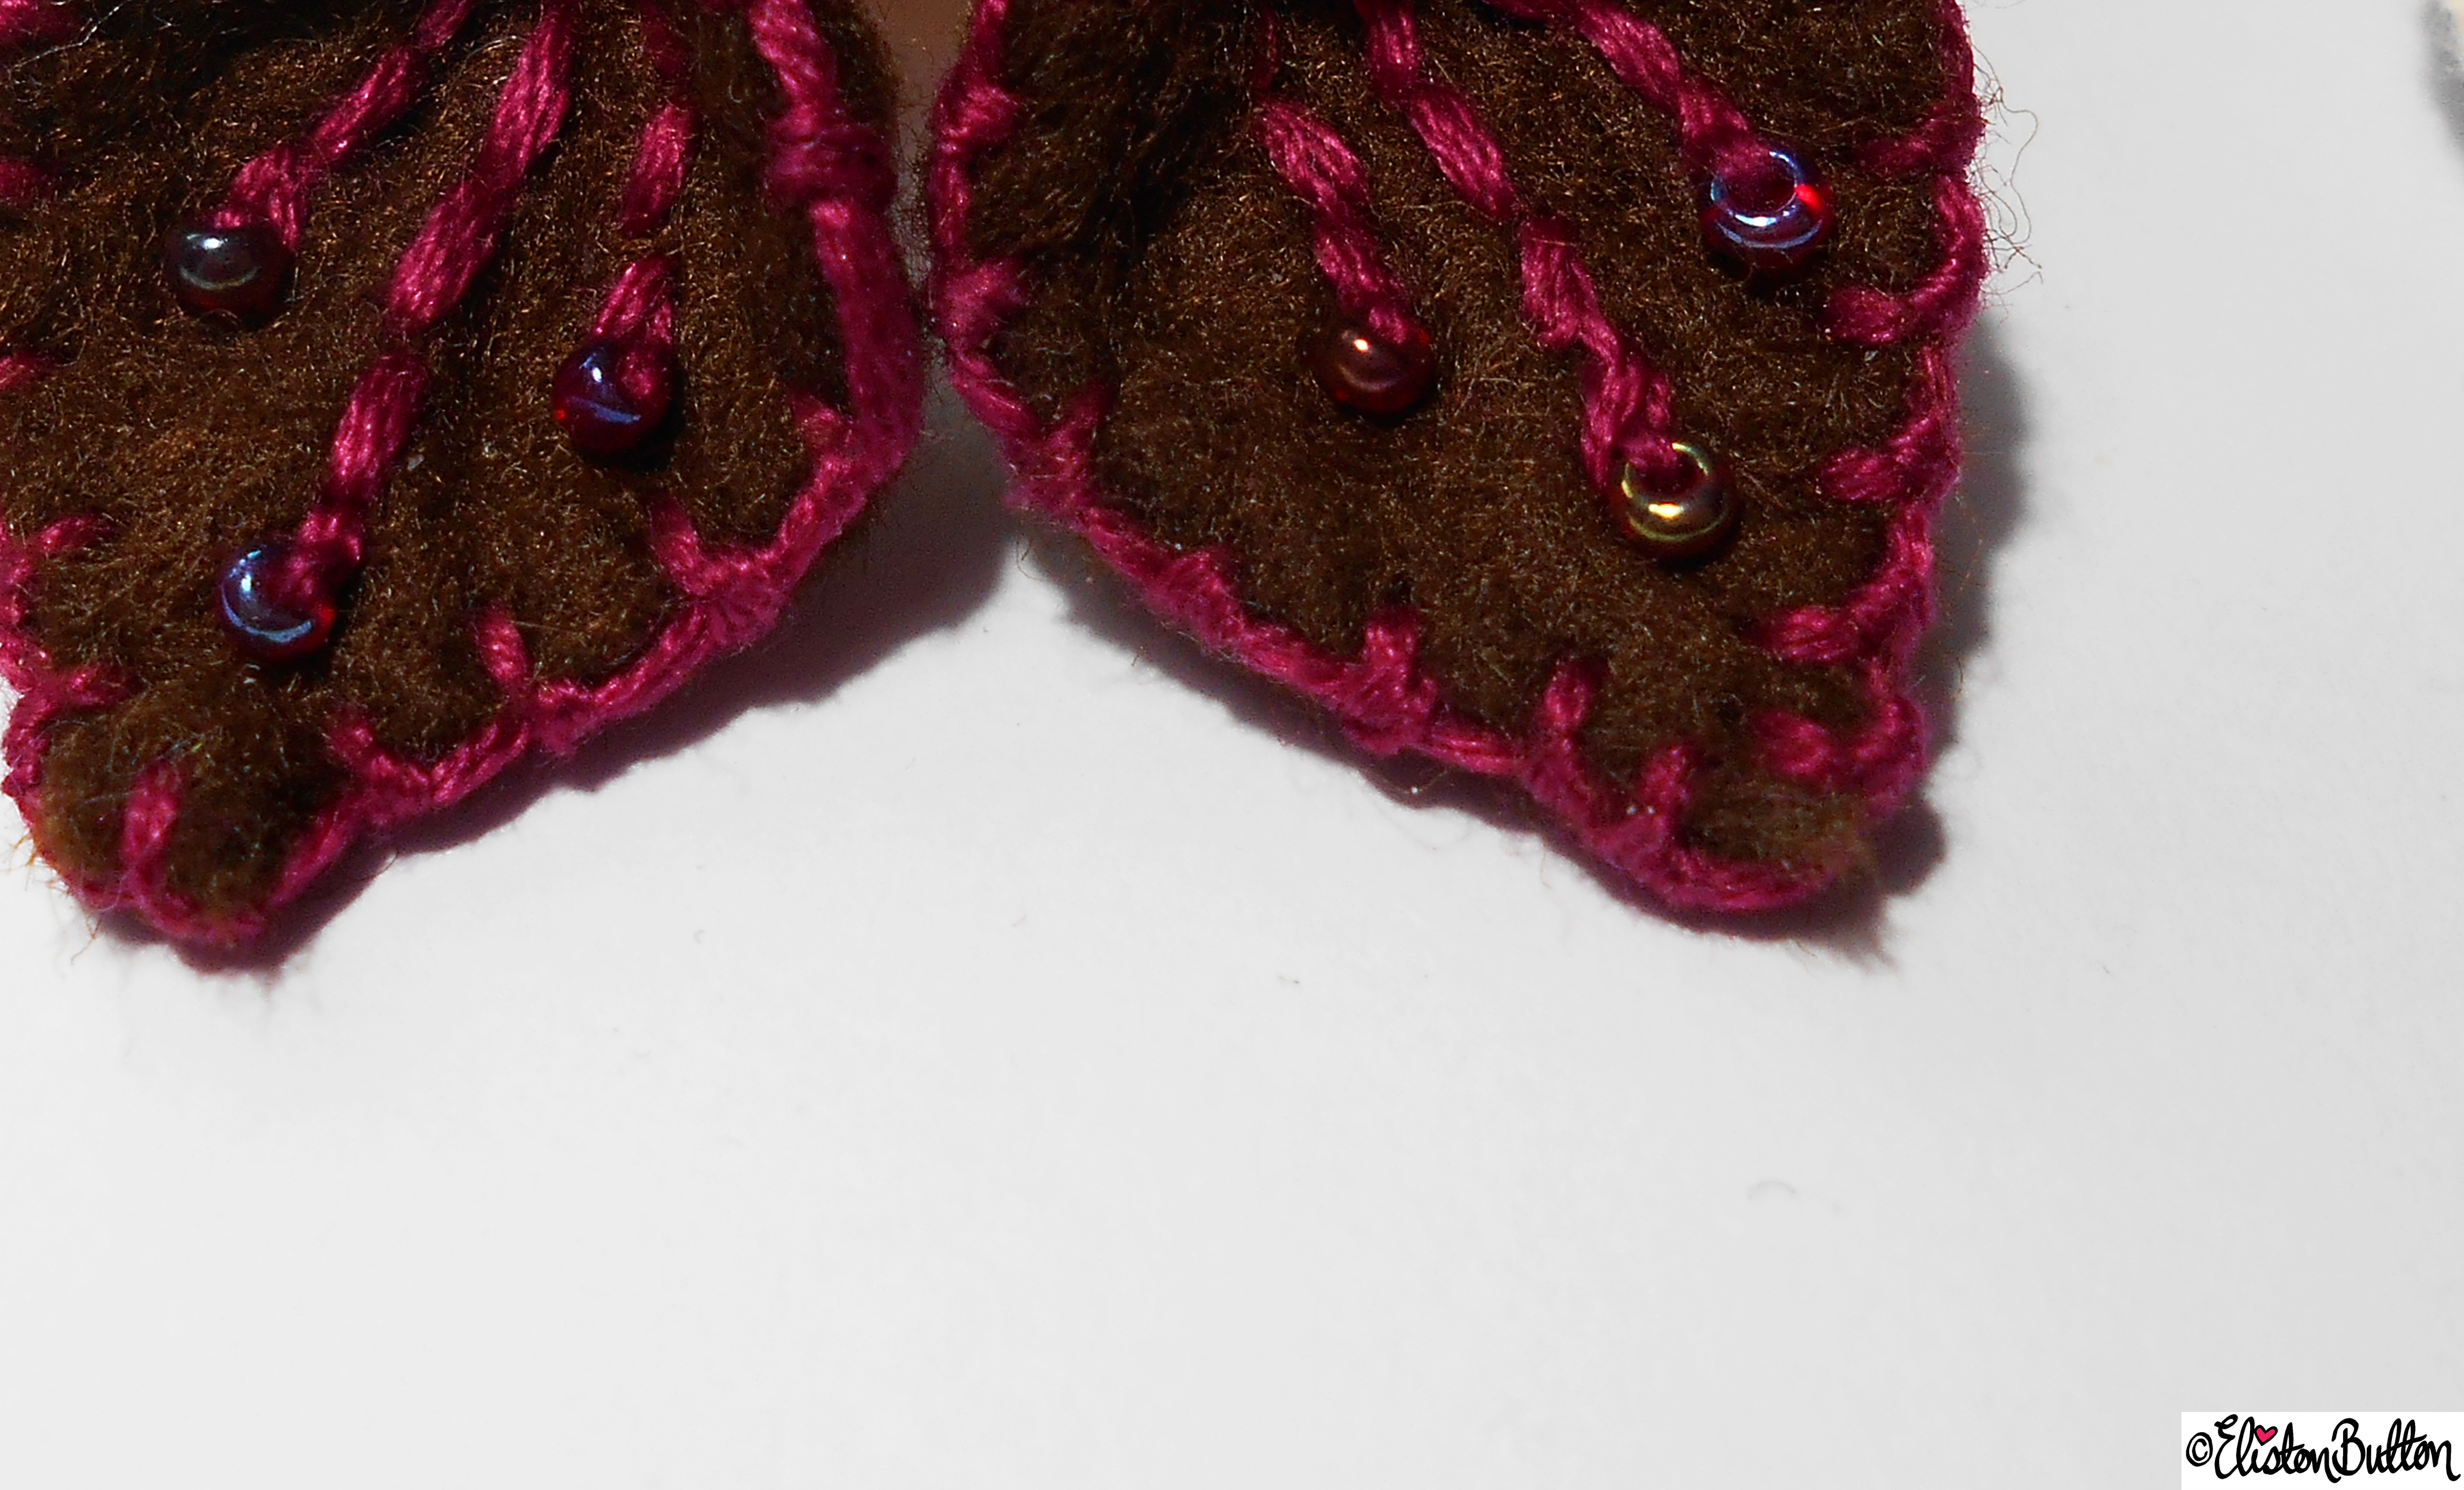 Raspberry and Chocolate  Felt Earrings and Tag Close Up - Create 28 - No.2 - Embroidered Felt Petal Earrings at www.elistonbutton.com - Eliston Button - That Crafty Kid – Art, Design, Craft & Adventure.